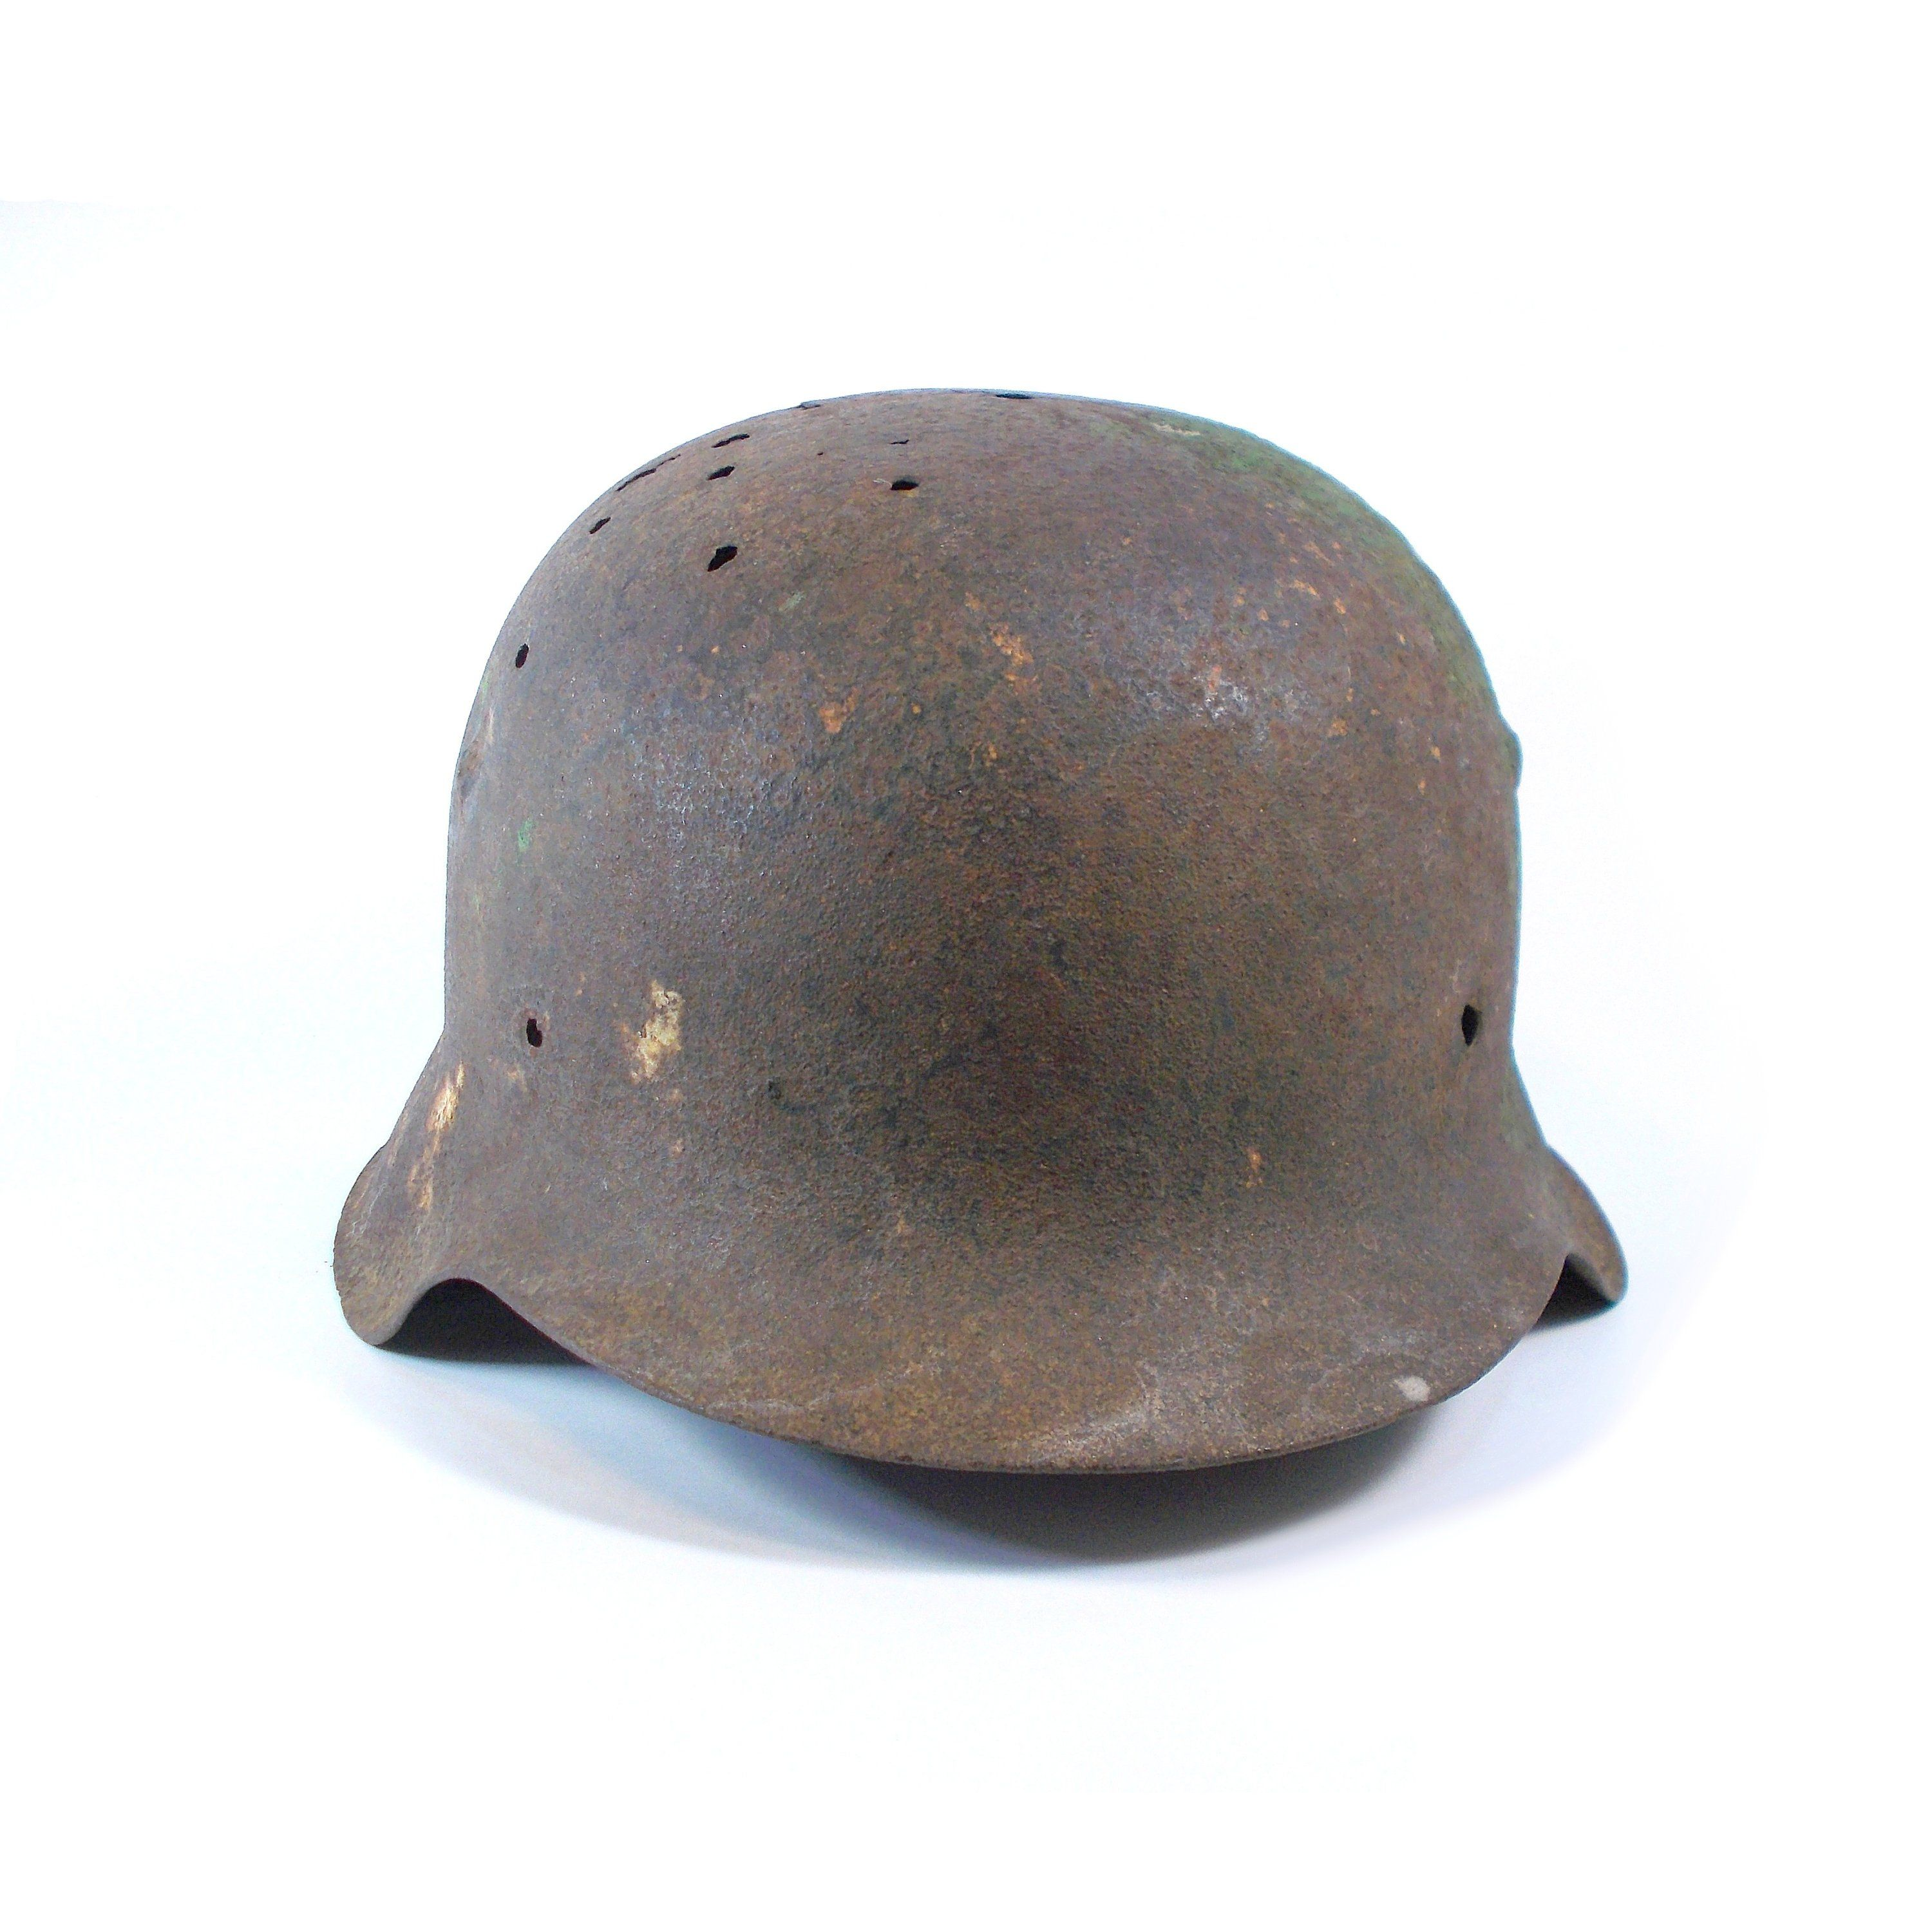 e3880b78ee27a WW2 German helmet Hard head protector Vintage military authentic WWII Army  soldier metal hat Rusty distressed war collectible memoriabilia 1